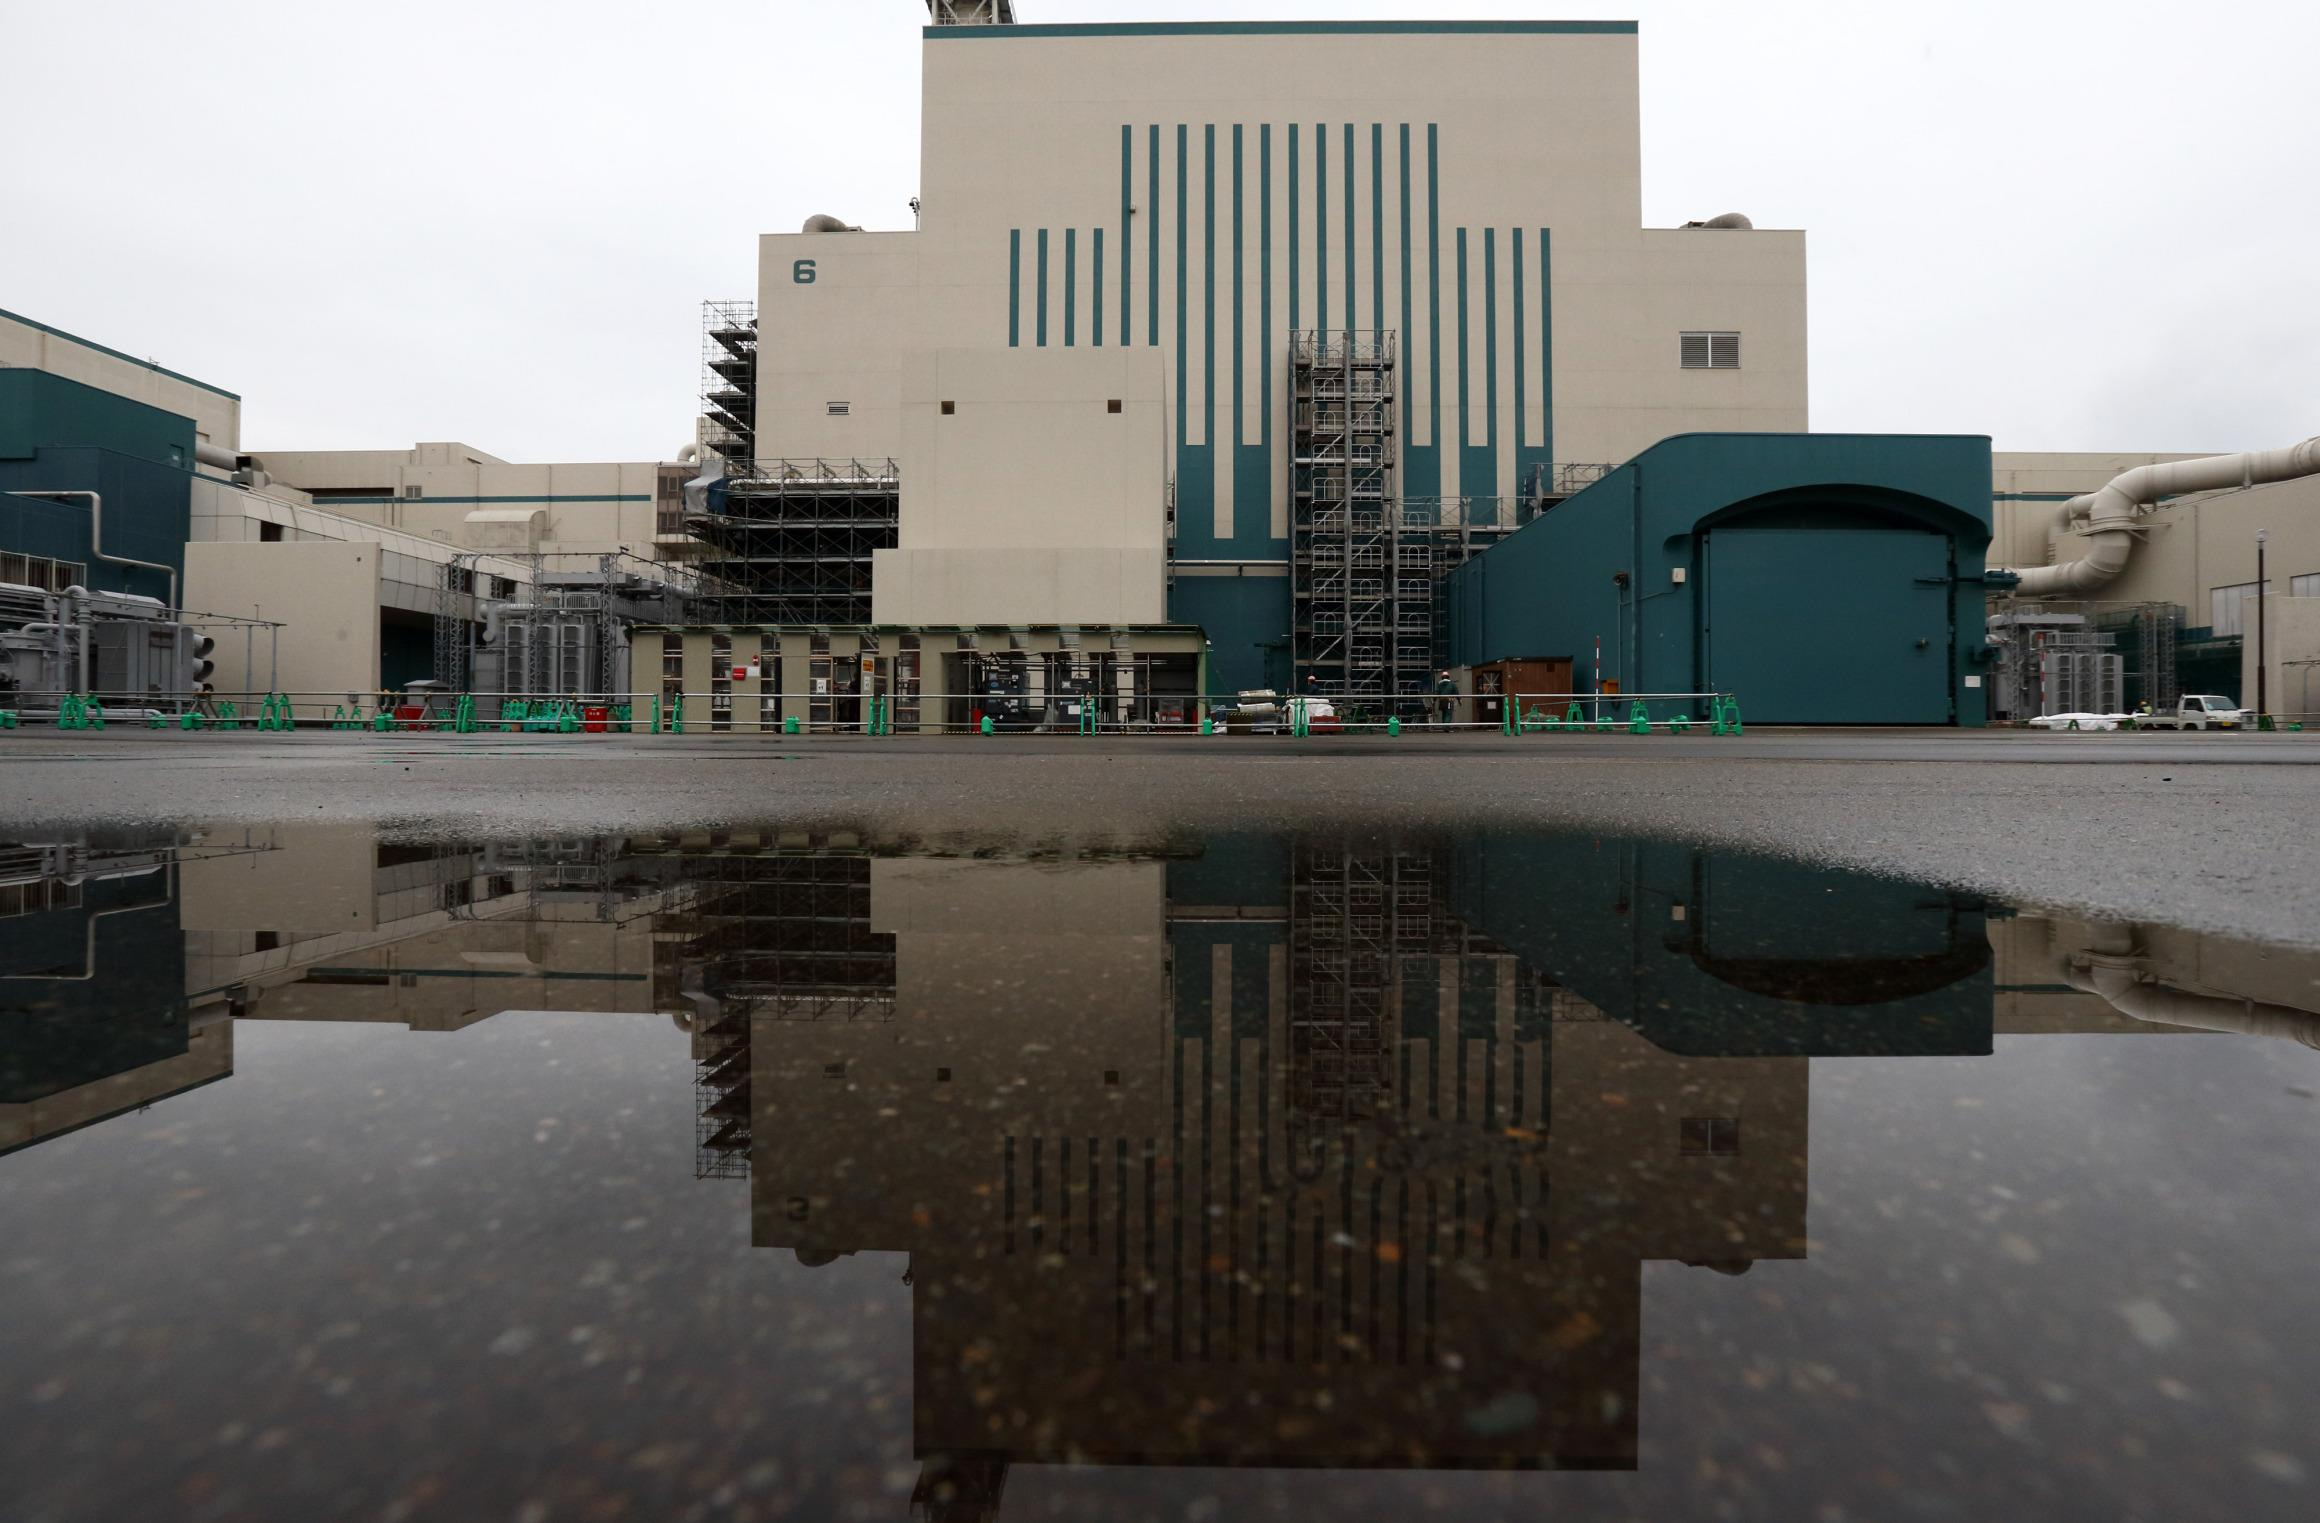 Tepco Wins Rare Nuclear Test as Mayor Accepts Reactor Plan